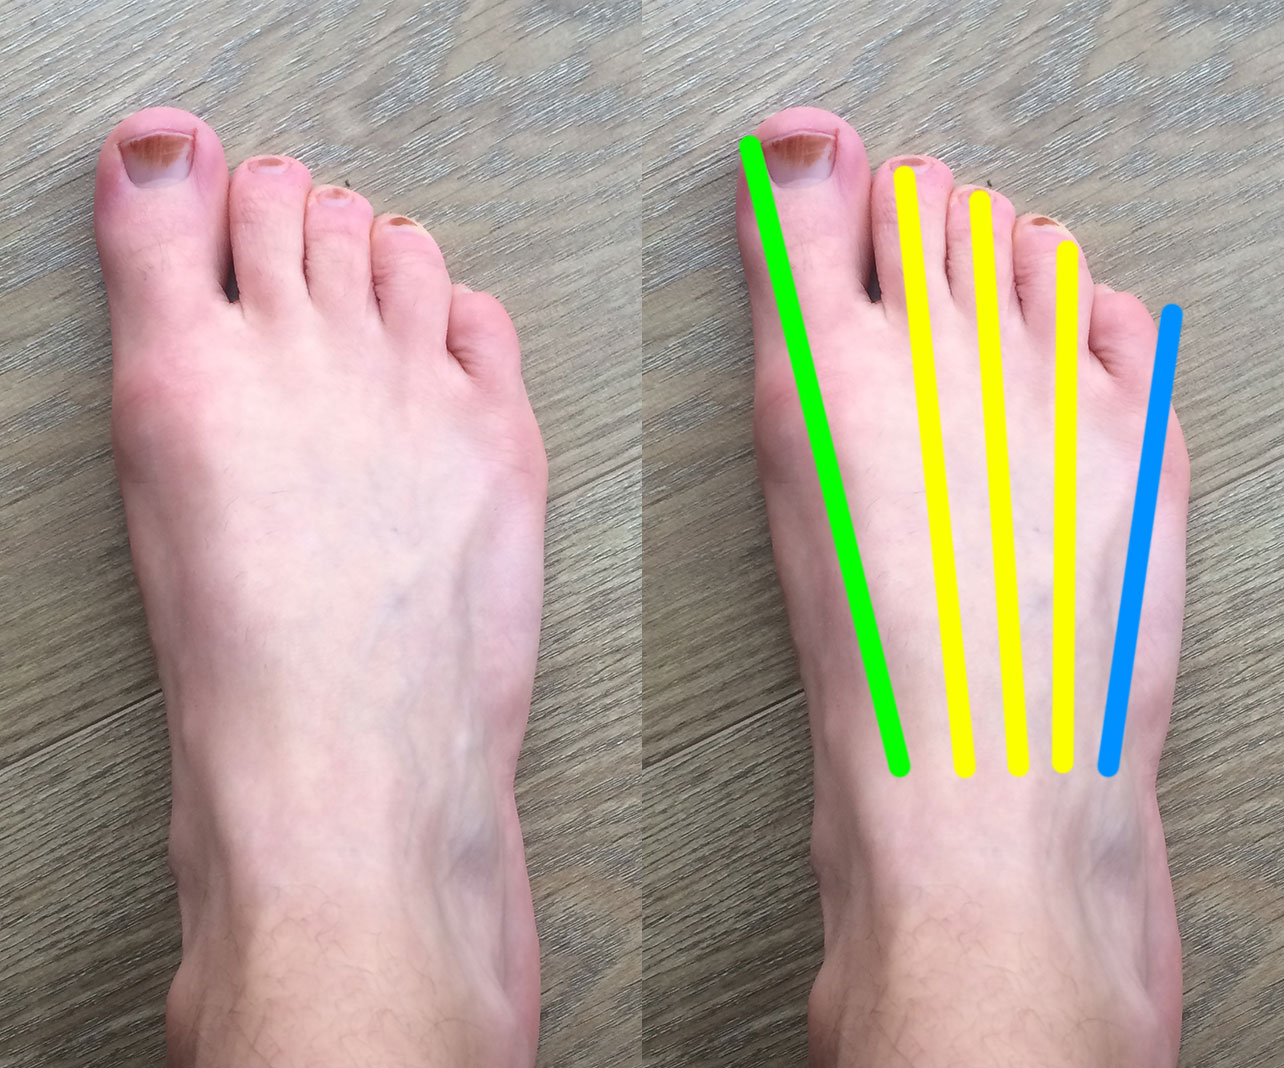 My toes and correct bones diagram